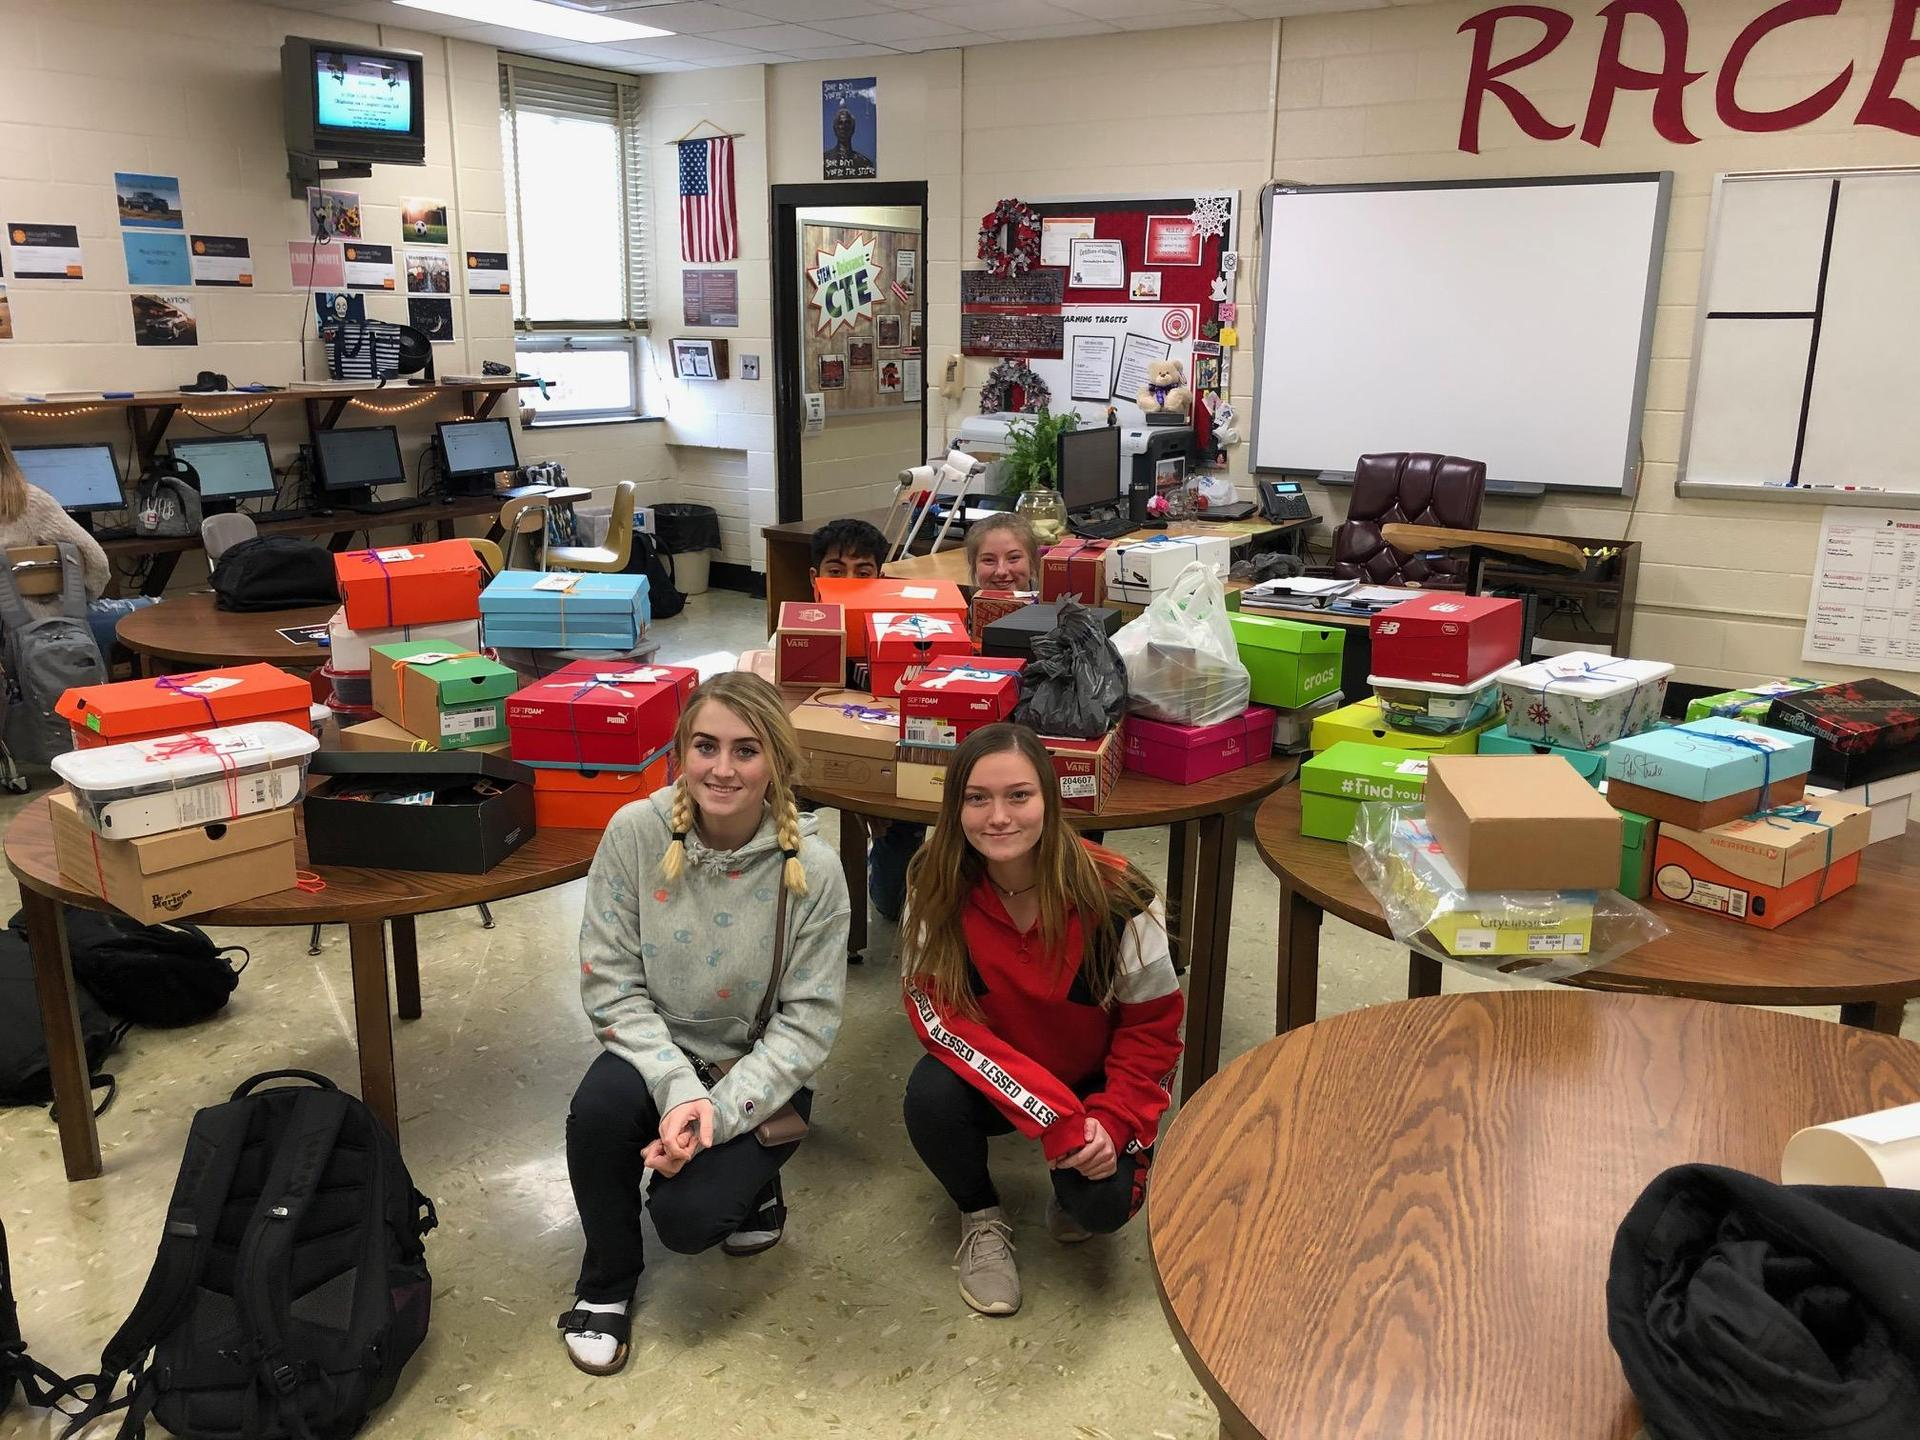 Thanksgiving Shoeboxes for those less fortunate. Jaylin Walker had the idea and over 50 club members stepped up and volunteered to prepare a shoebox outside of school on their own time and dime.